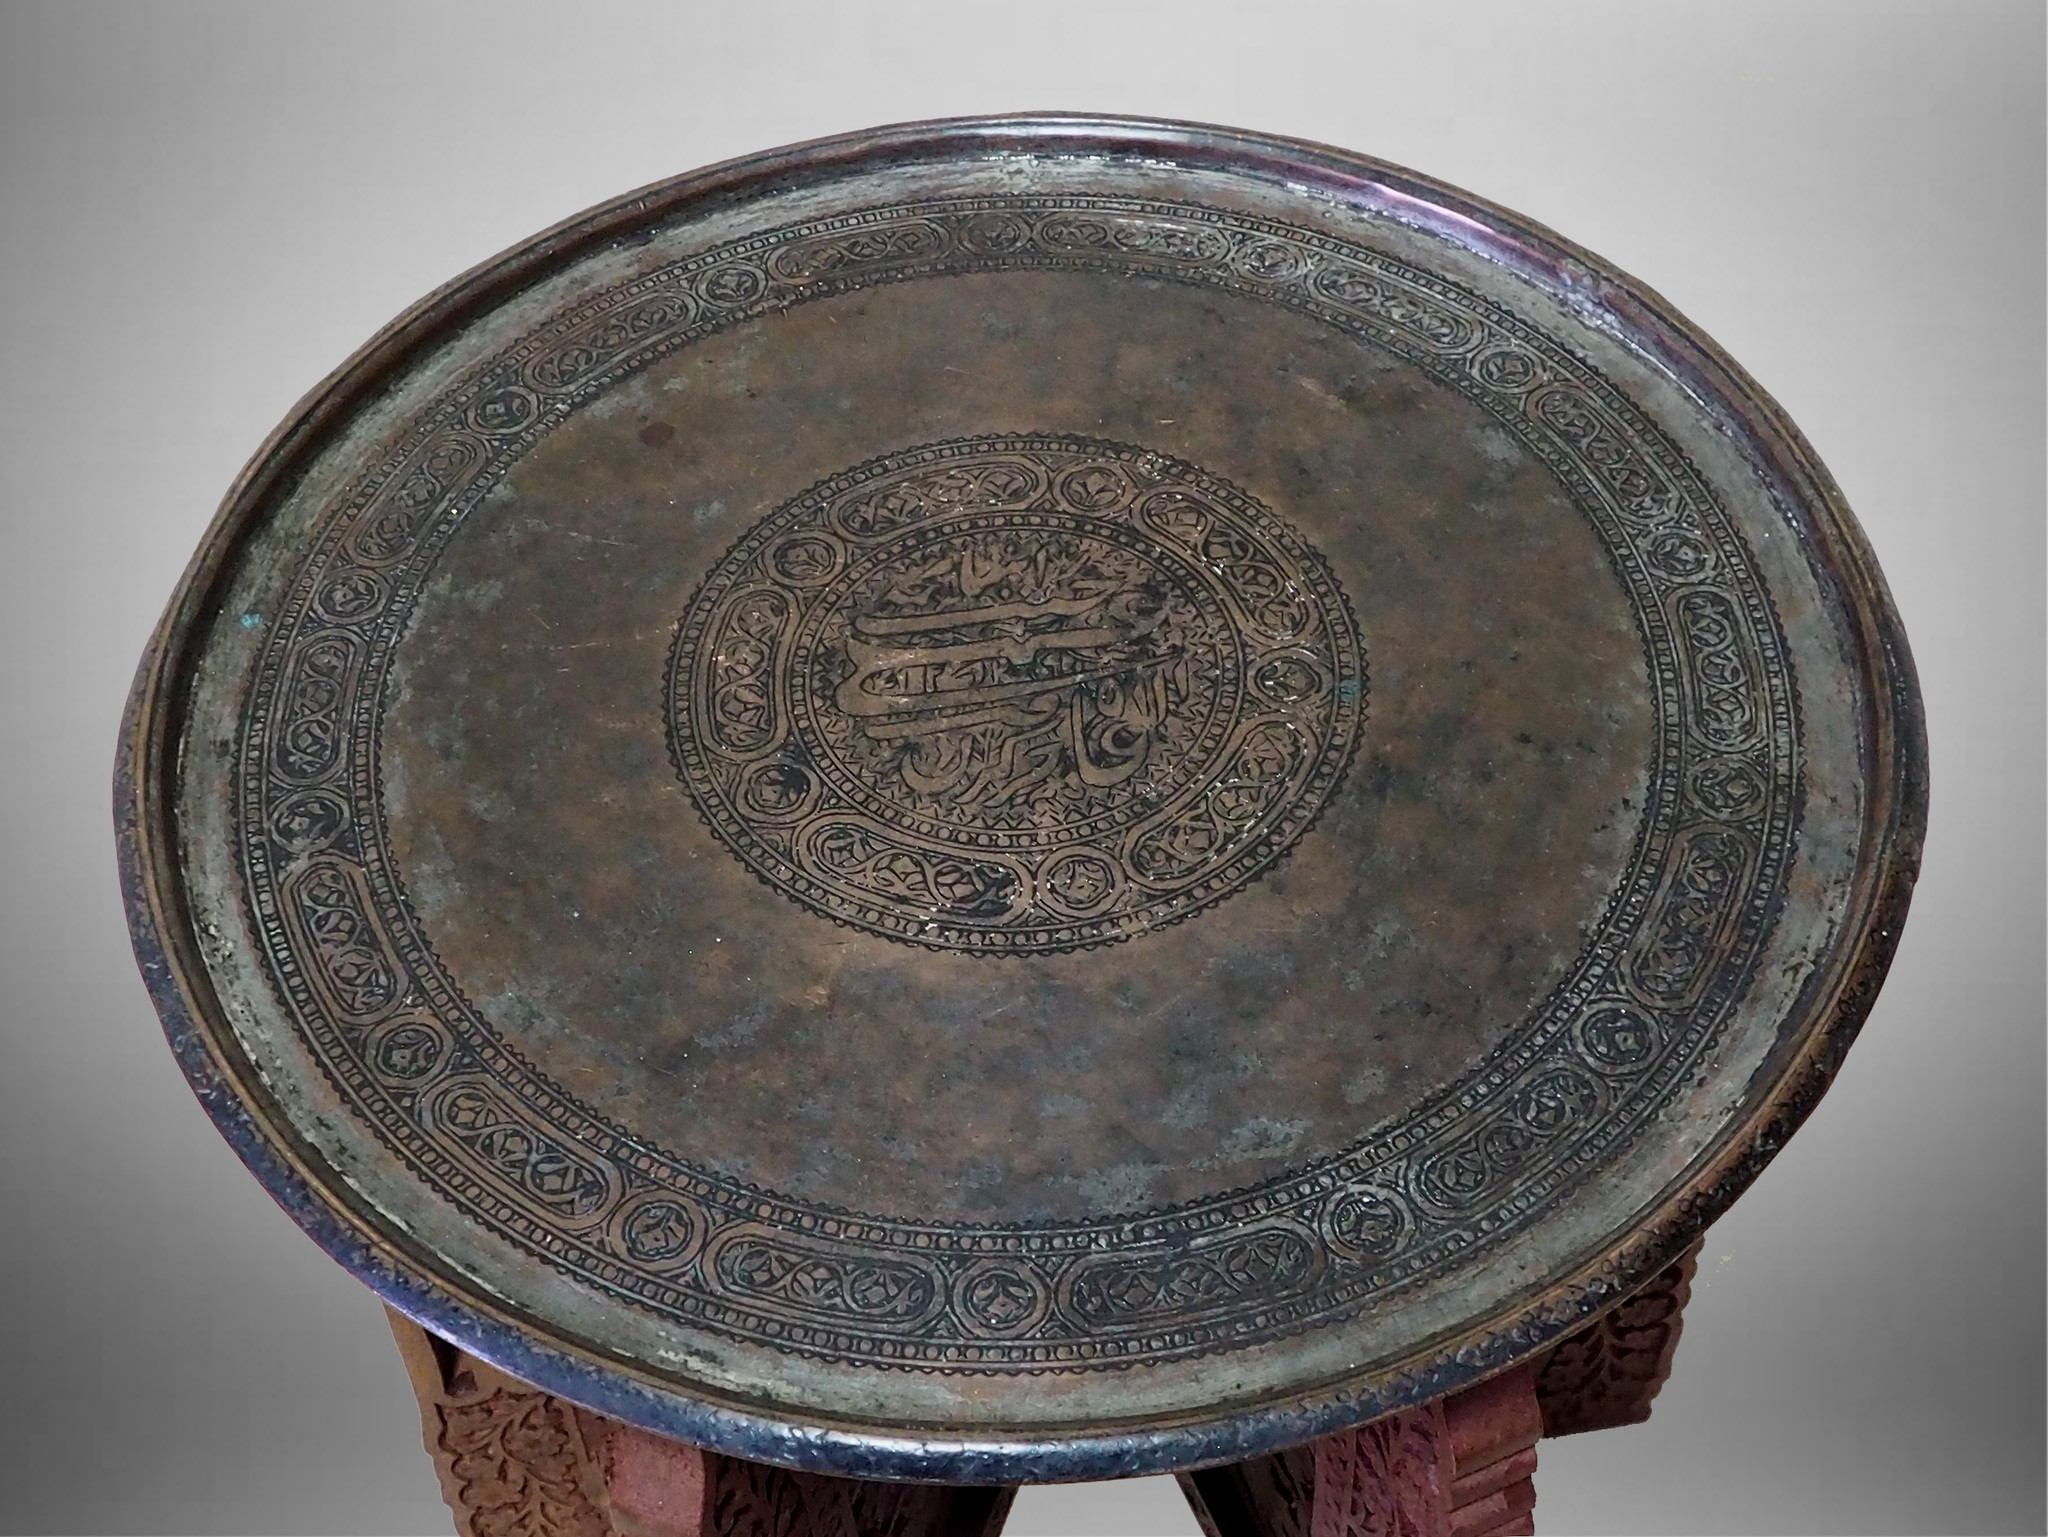 43 cm Antique ottoman orient Islamic  Hammer Engraved Brass table Tea table side table Tray from Afghanistan  No-21/M